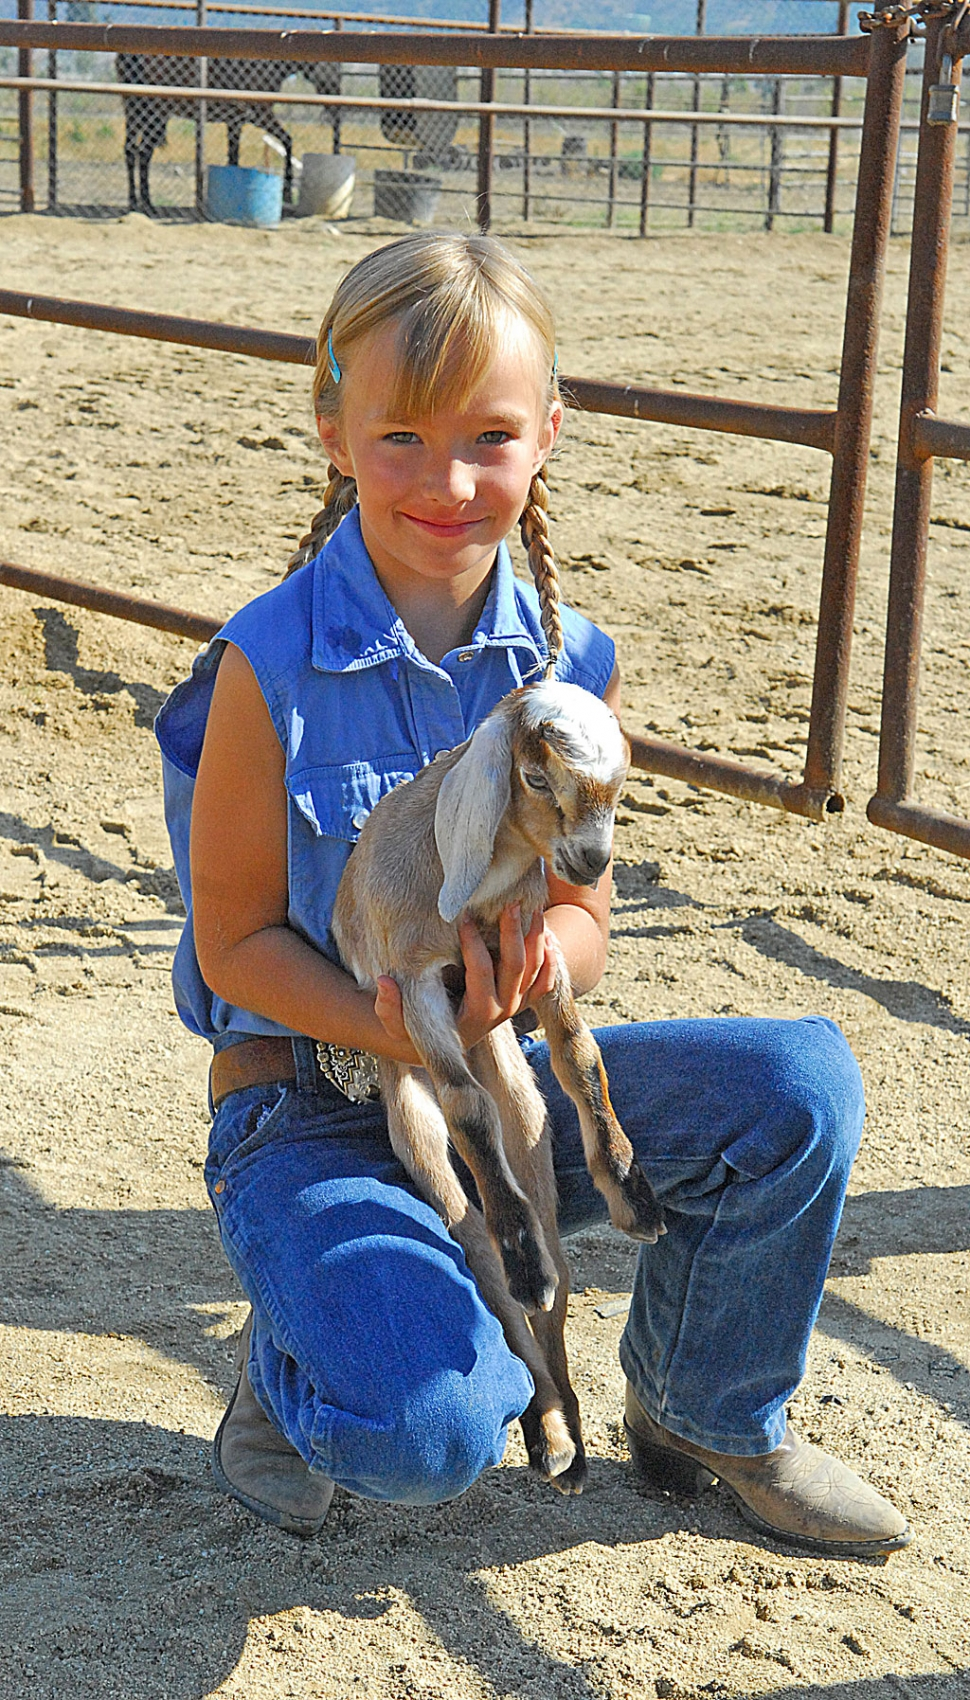 Practice showmanship took place Saturday at the school Farm. Pictured here is a young lady holding a newborn goat. The Gazette would appreciate it if all visitors and participants at the Farm would identify their photos for all to enjoy. A story on the pre-Ventura County Fair entrants will be posted Monday.